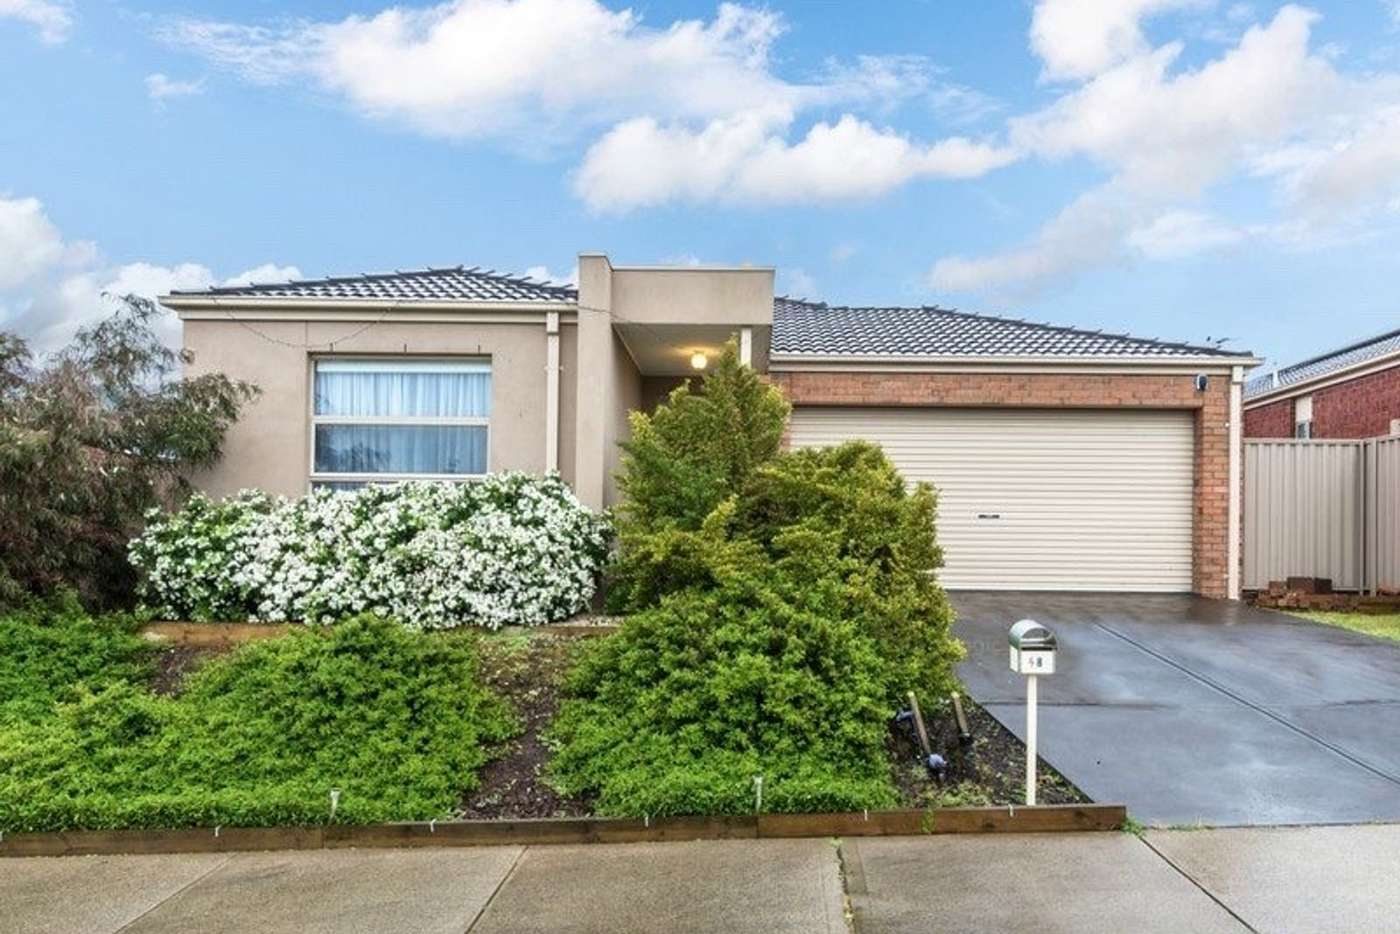 Main view of Homely house listing, 48 Harrison Way, Pakenham VIC 3810